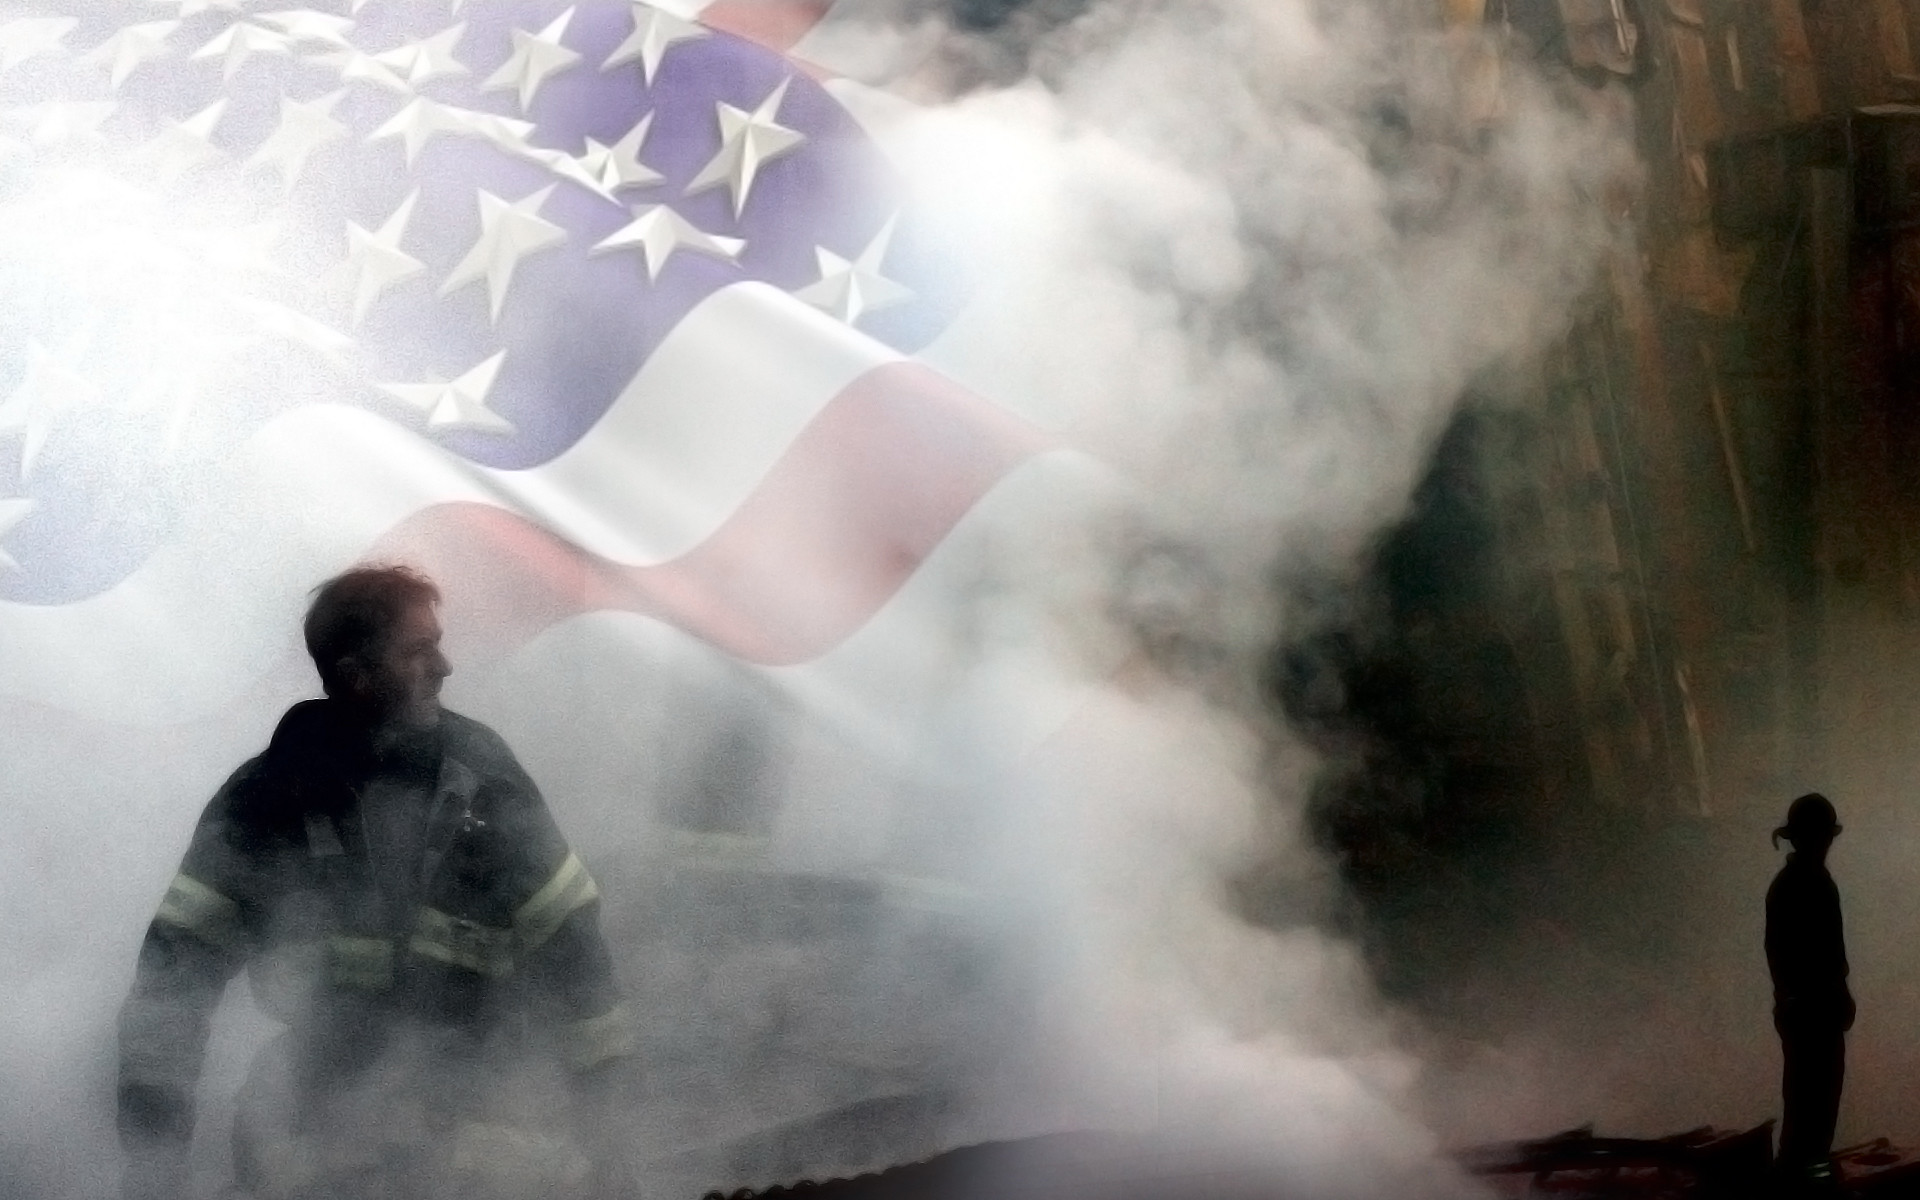 Res: 1920x1200, Firefighter Computer Backgrounds Firefighter tribute wallpaper